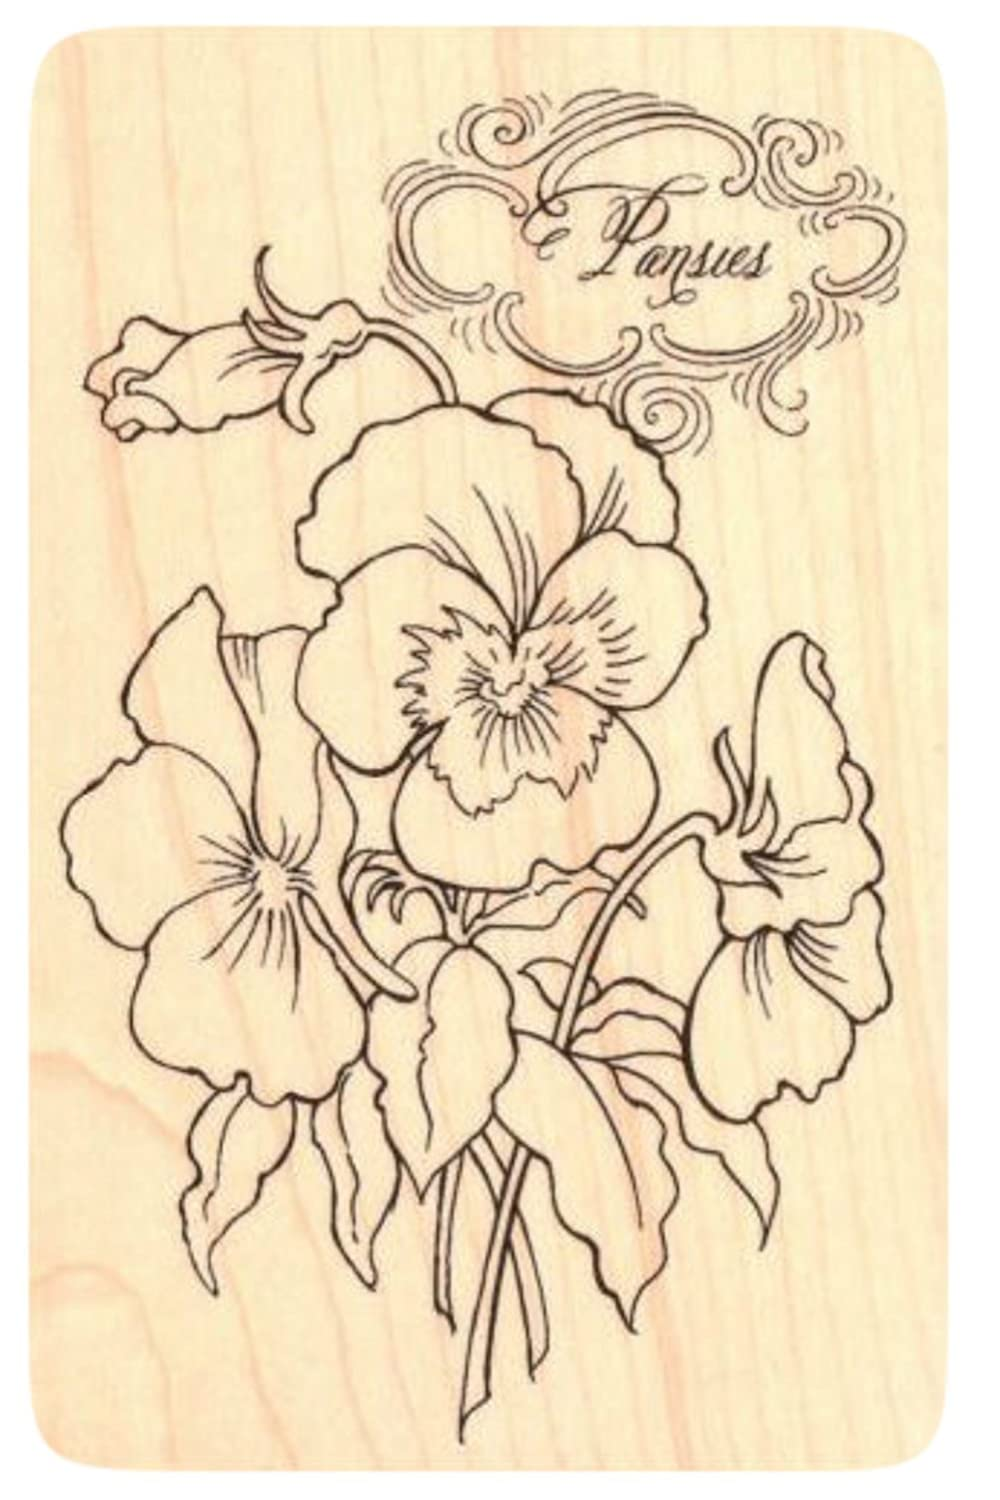 {Single Count} Unique /& Custom Fancy Pansy Bouquet /& Pansies Text Rectangle Shaped Genuine Wood Mounted Rubber Inking Stamp 3 by 4 1//2 Inches